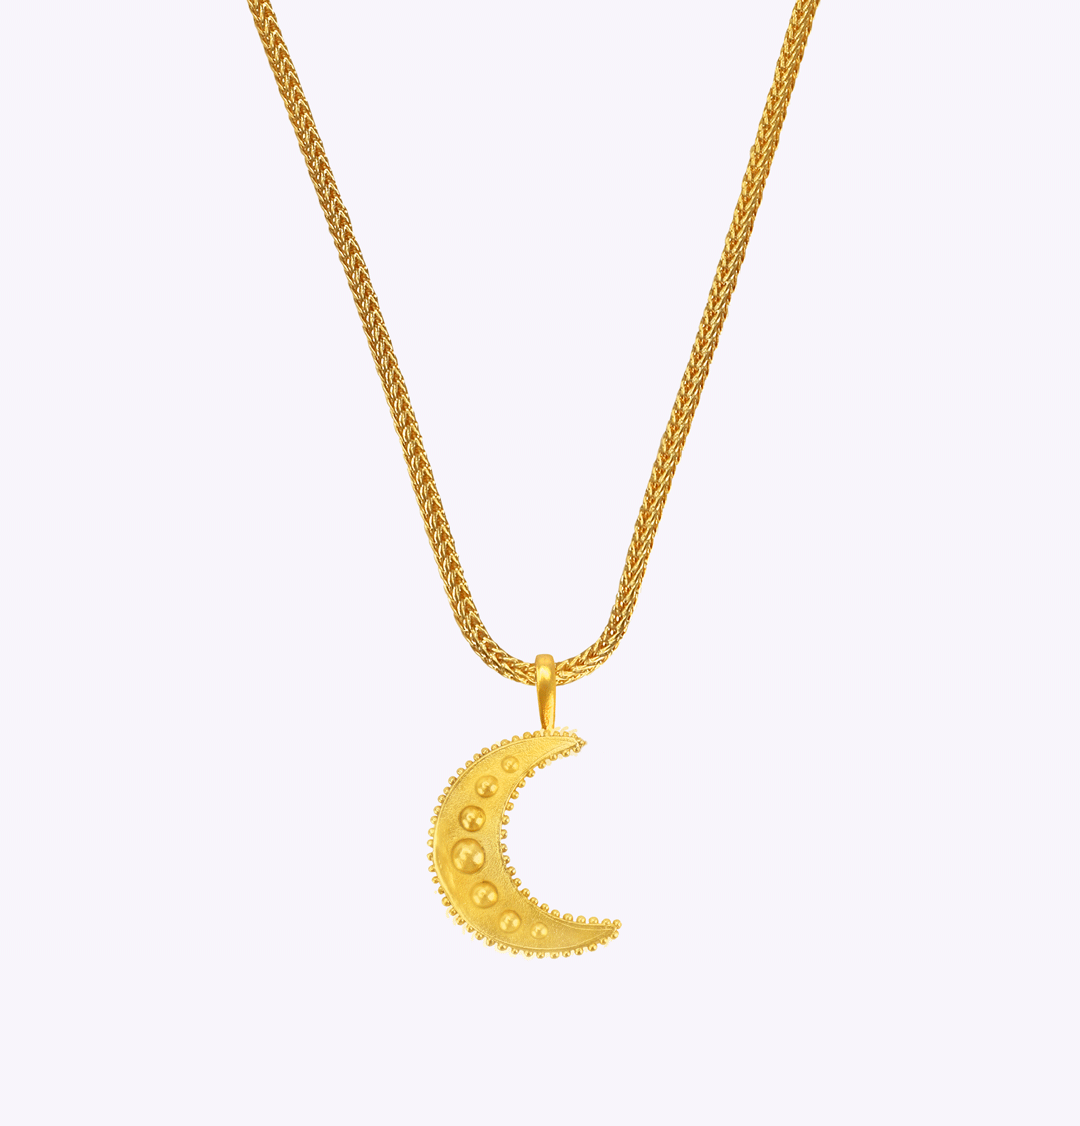 Moonlight Snake Chain Necklace